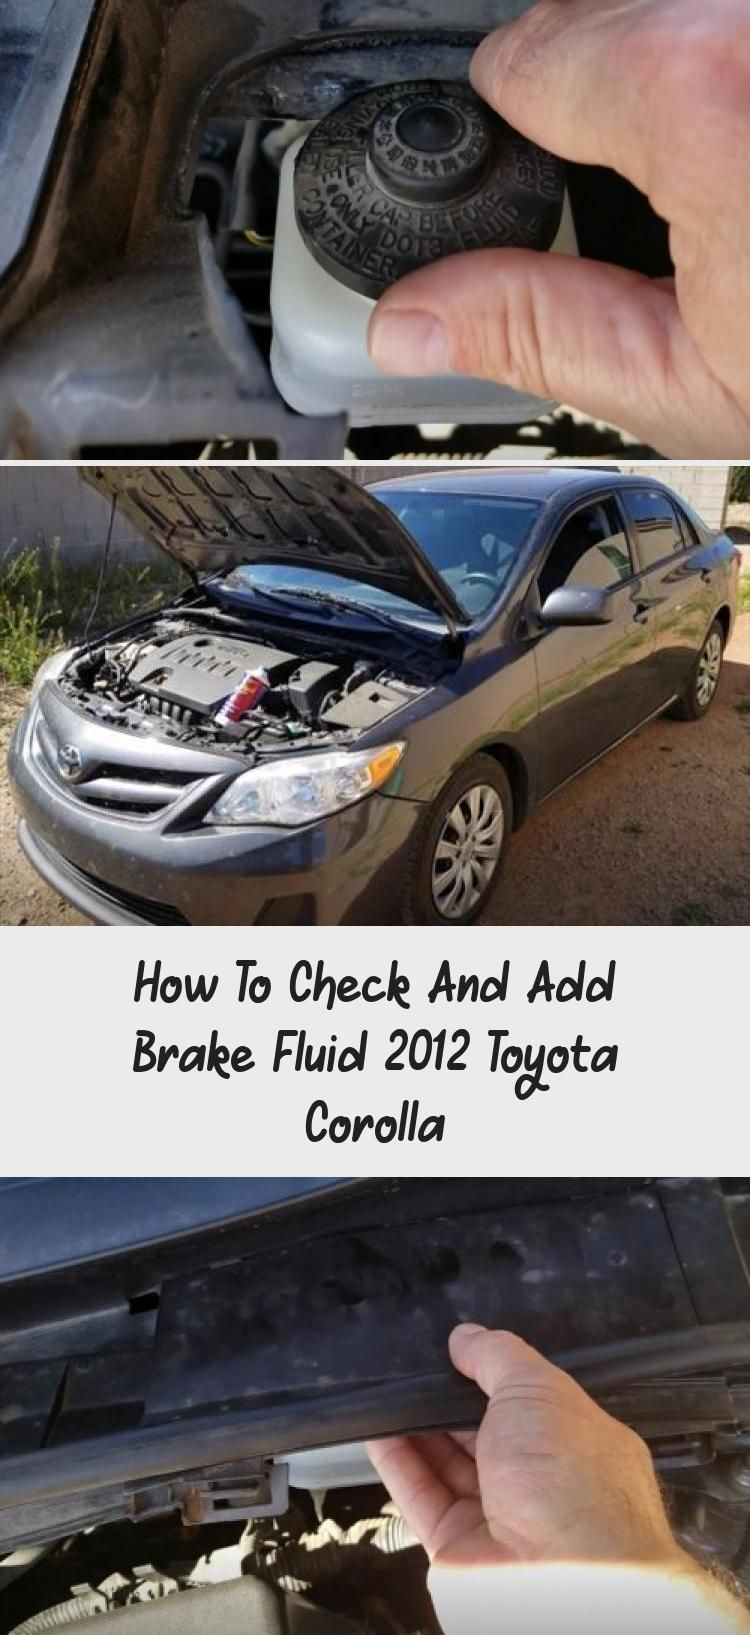 How to check and add brake fluid 2012 toyota corolla